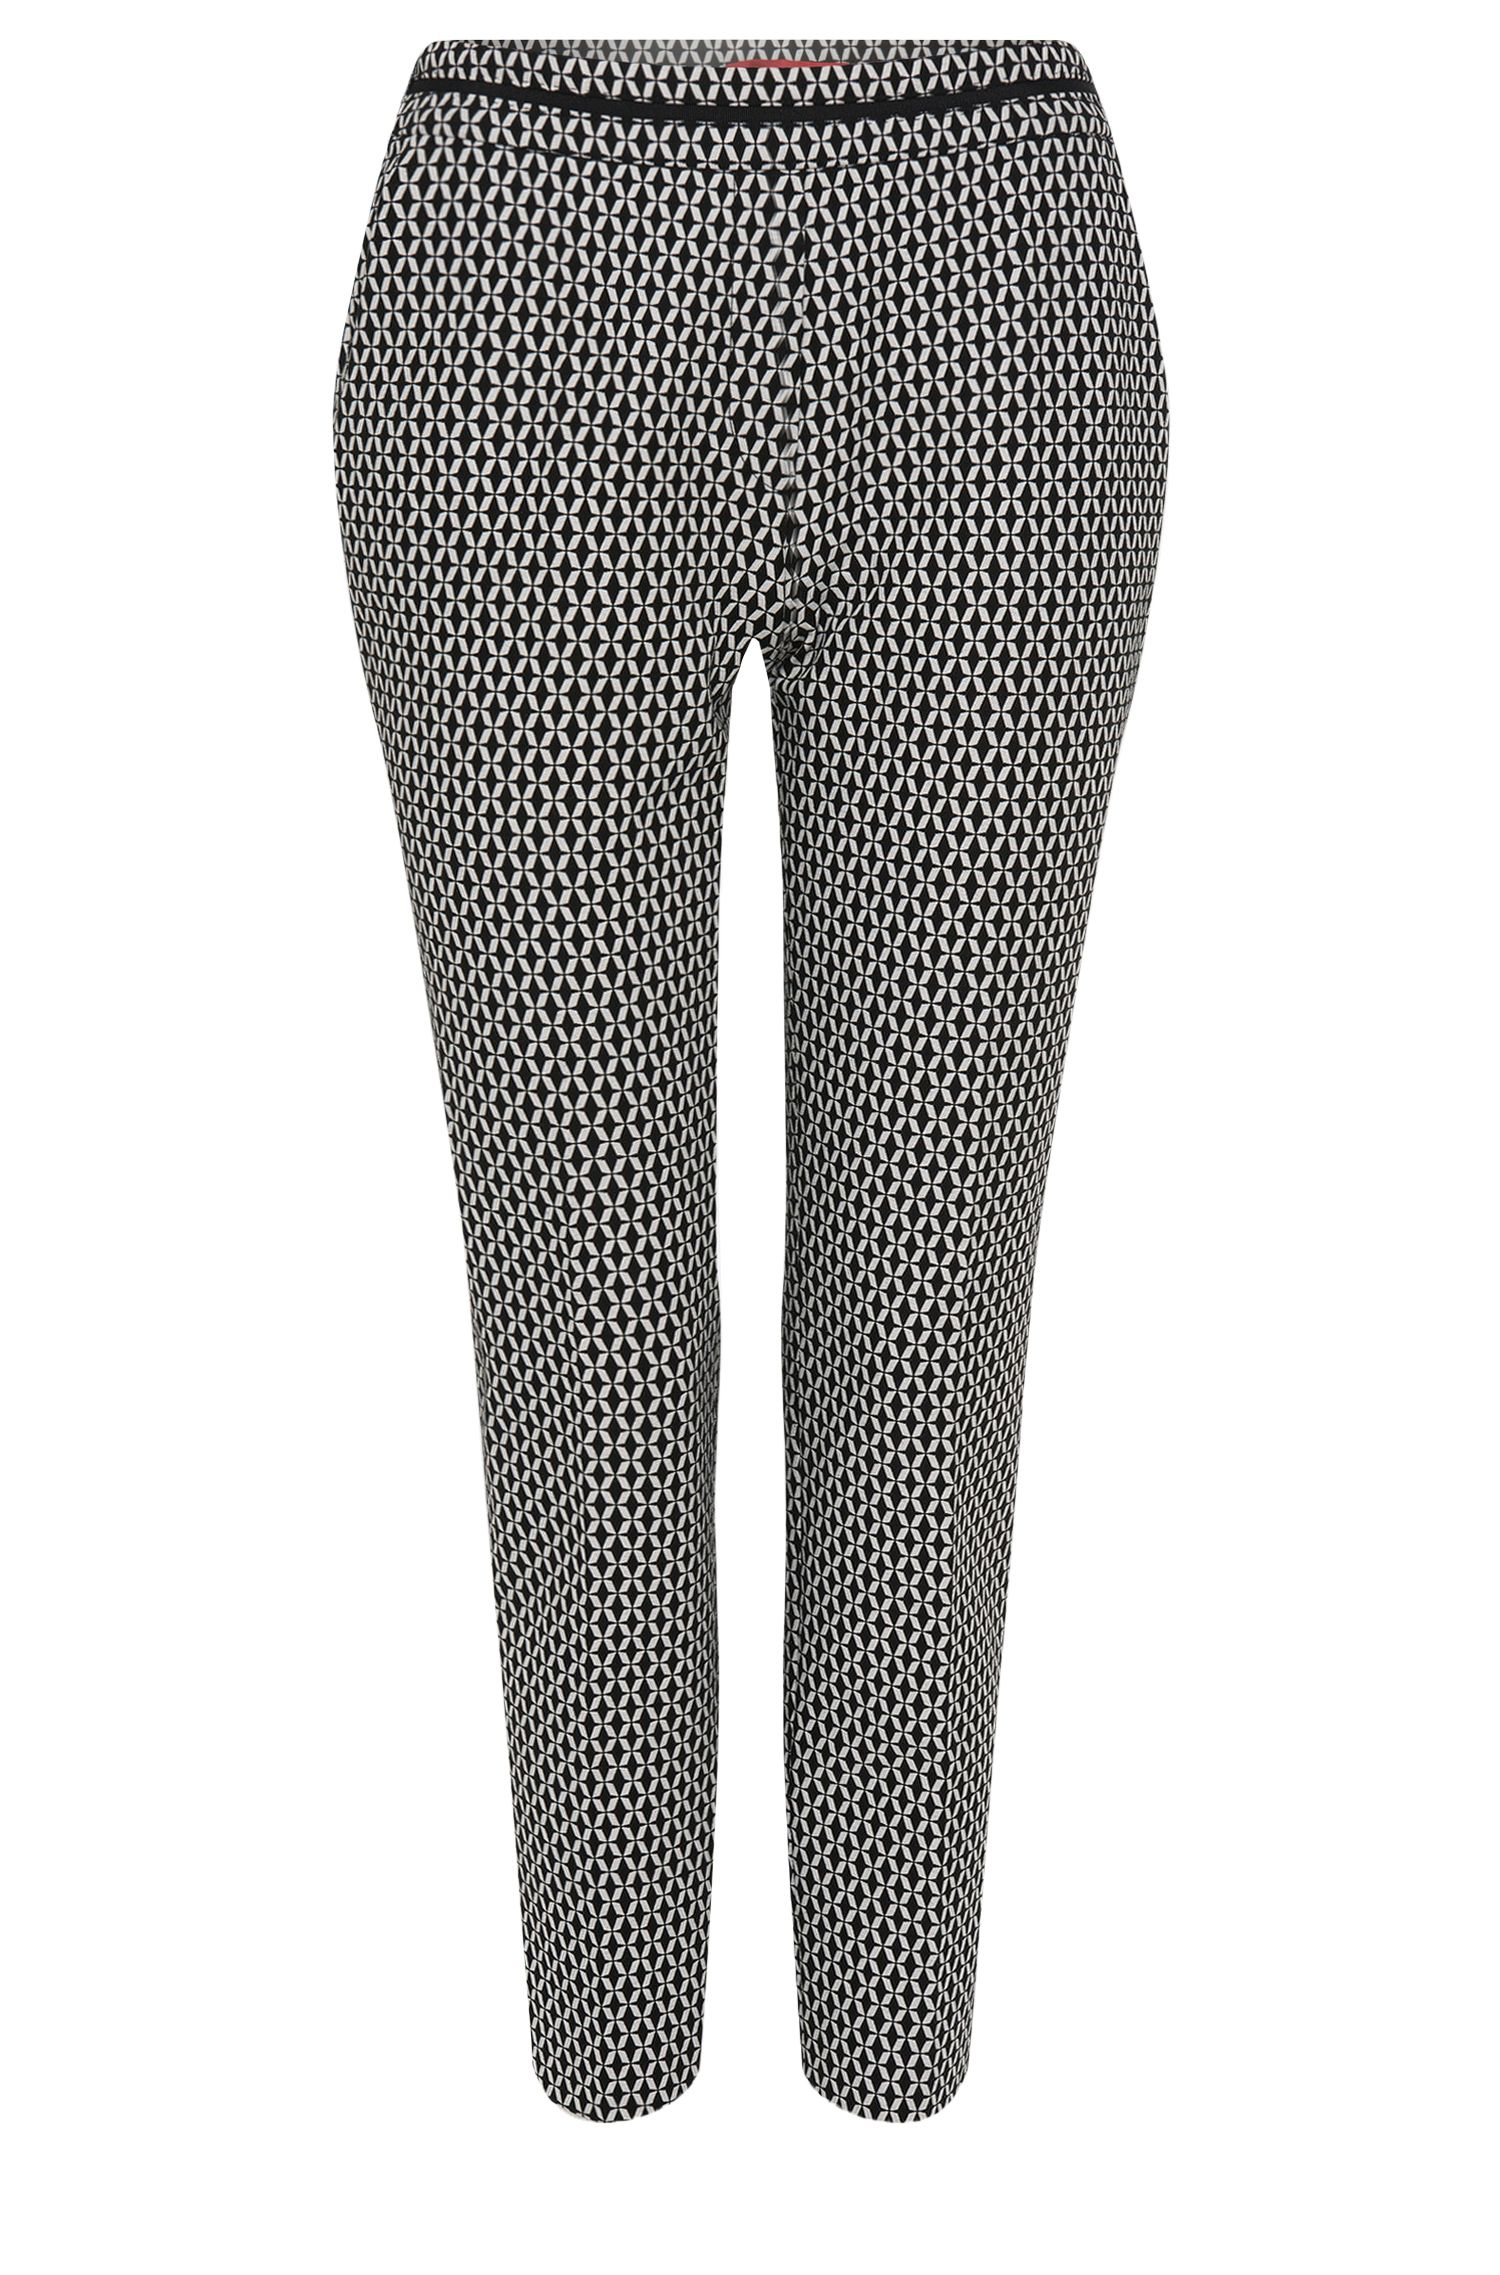 'Himonis' | Cotton Blend Hexagon Print Trousers